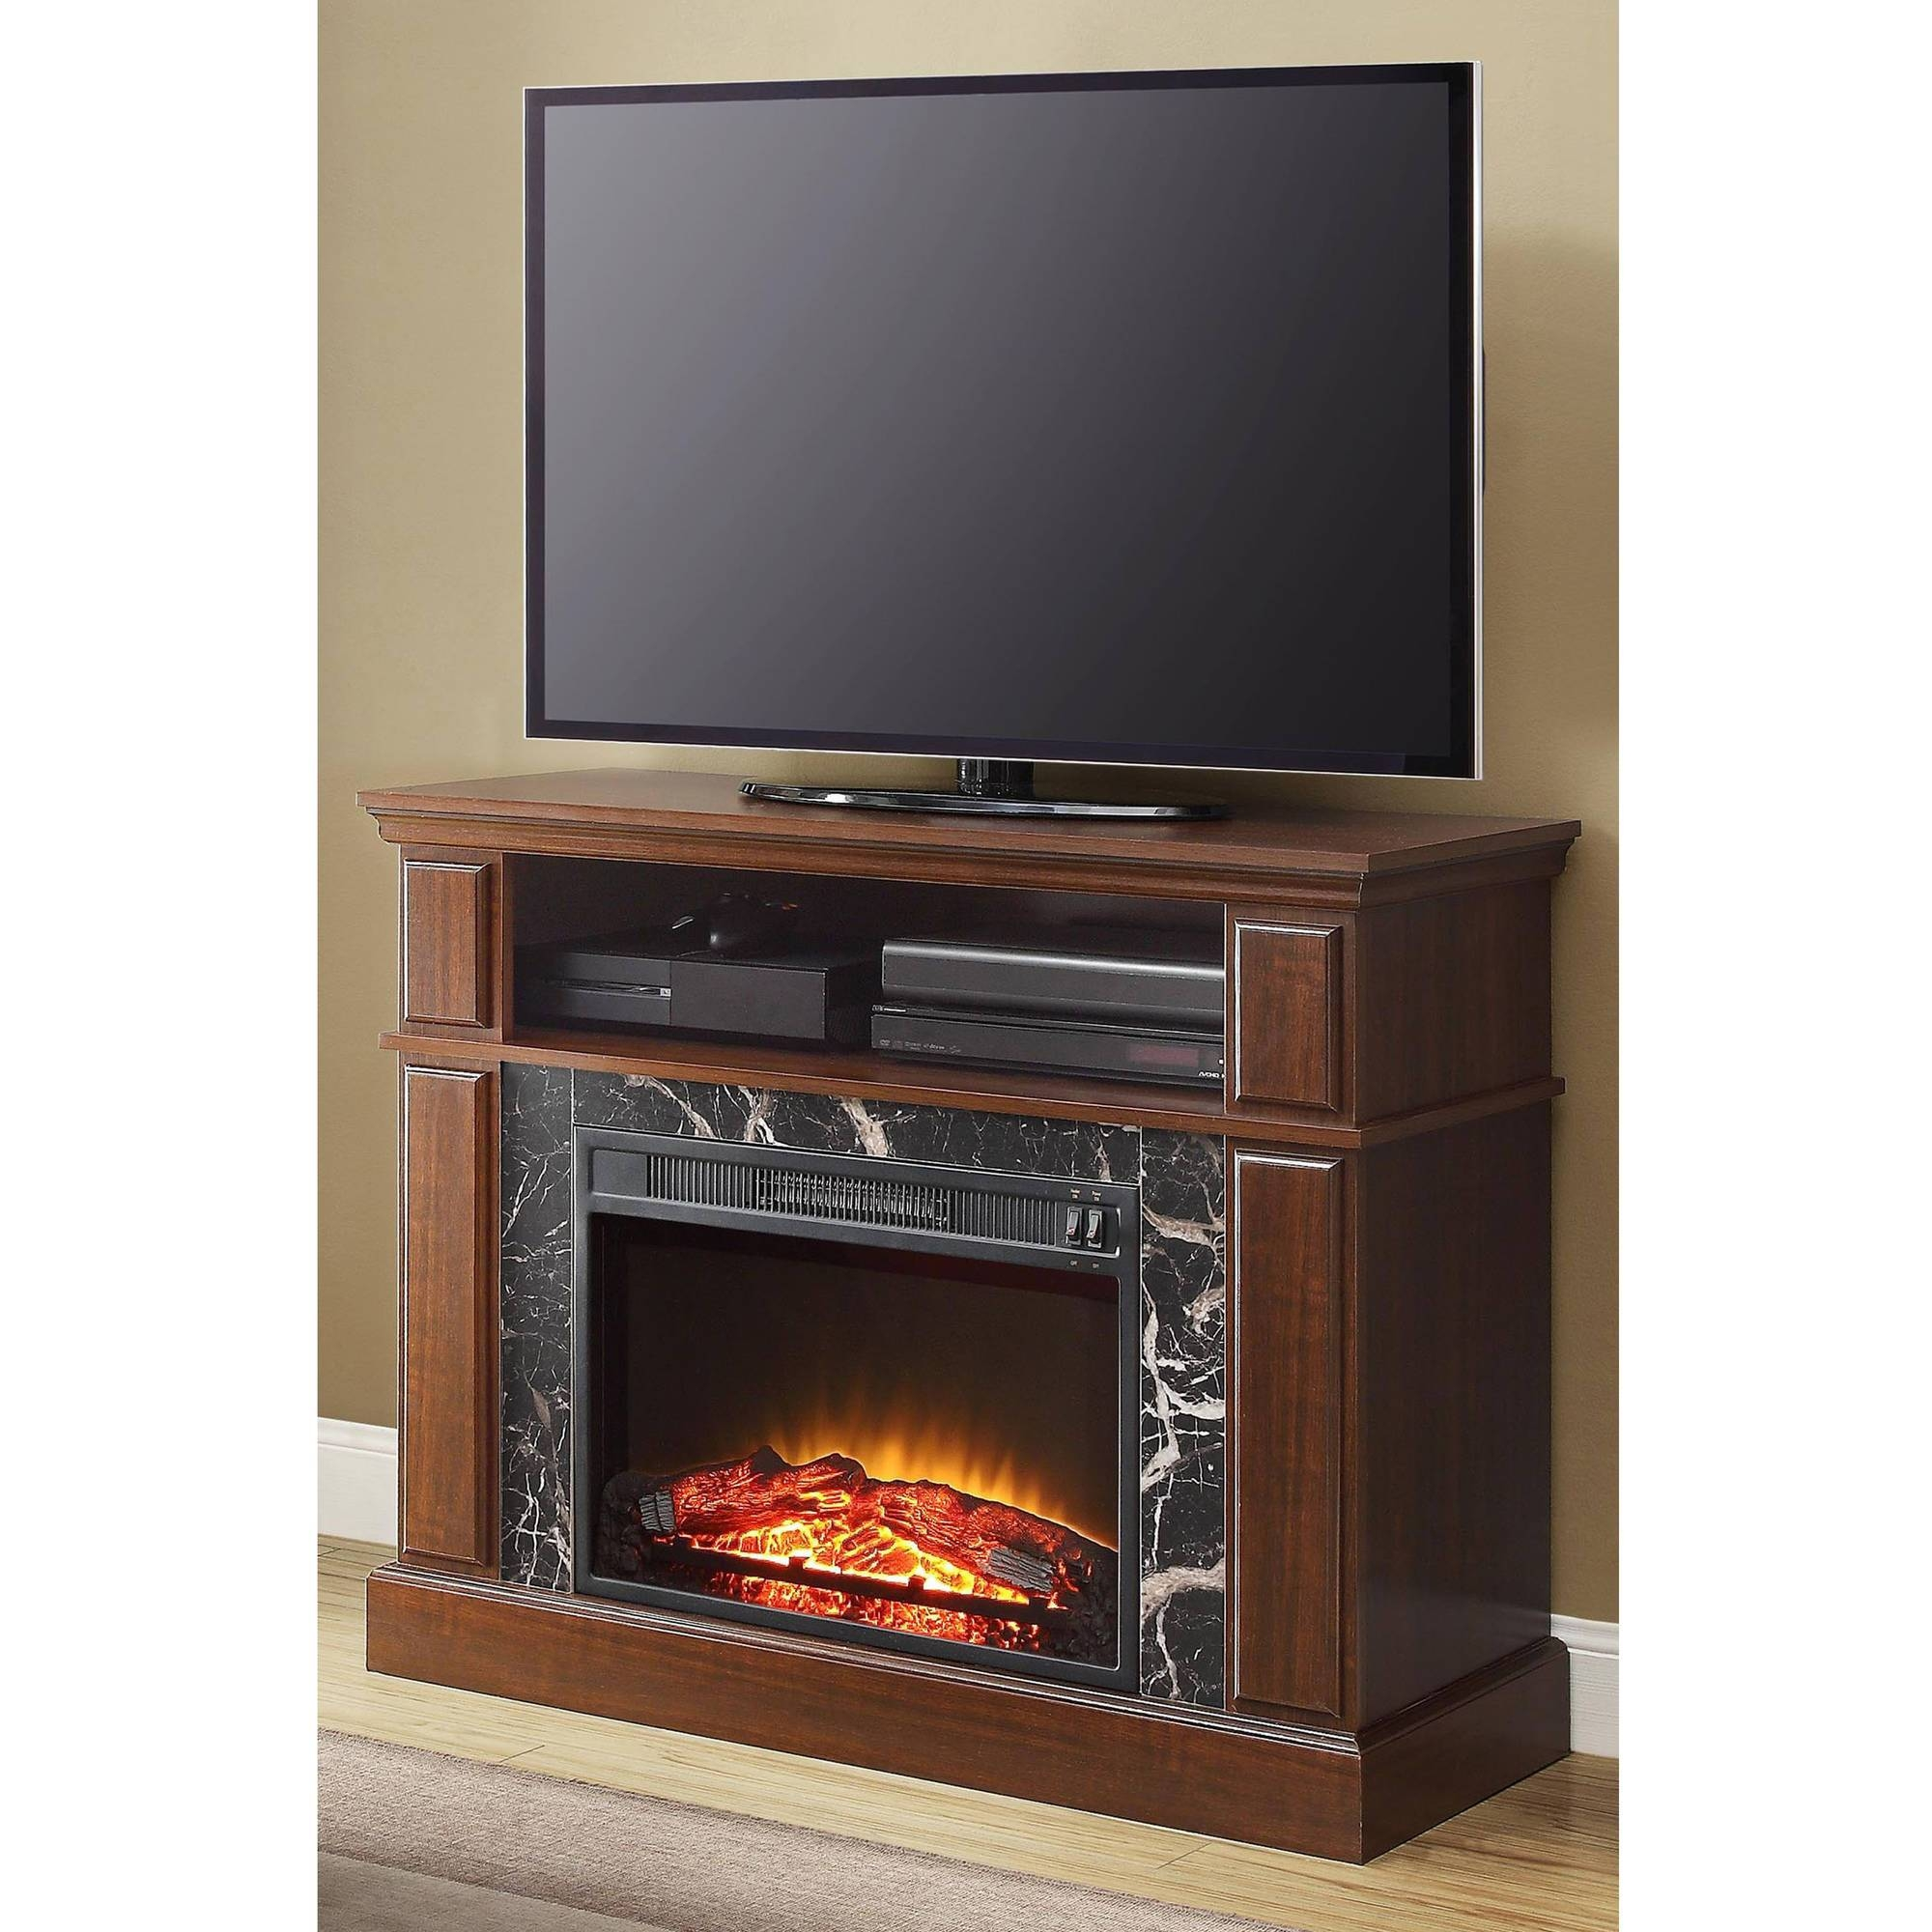 Tv Stands & Entertainment Centers - Walmart for Big Tv Stands Furniture (Image 12 of 15)